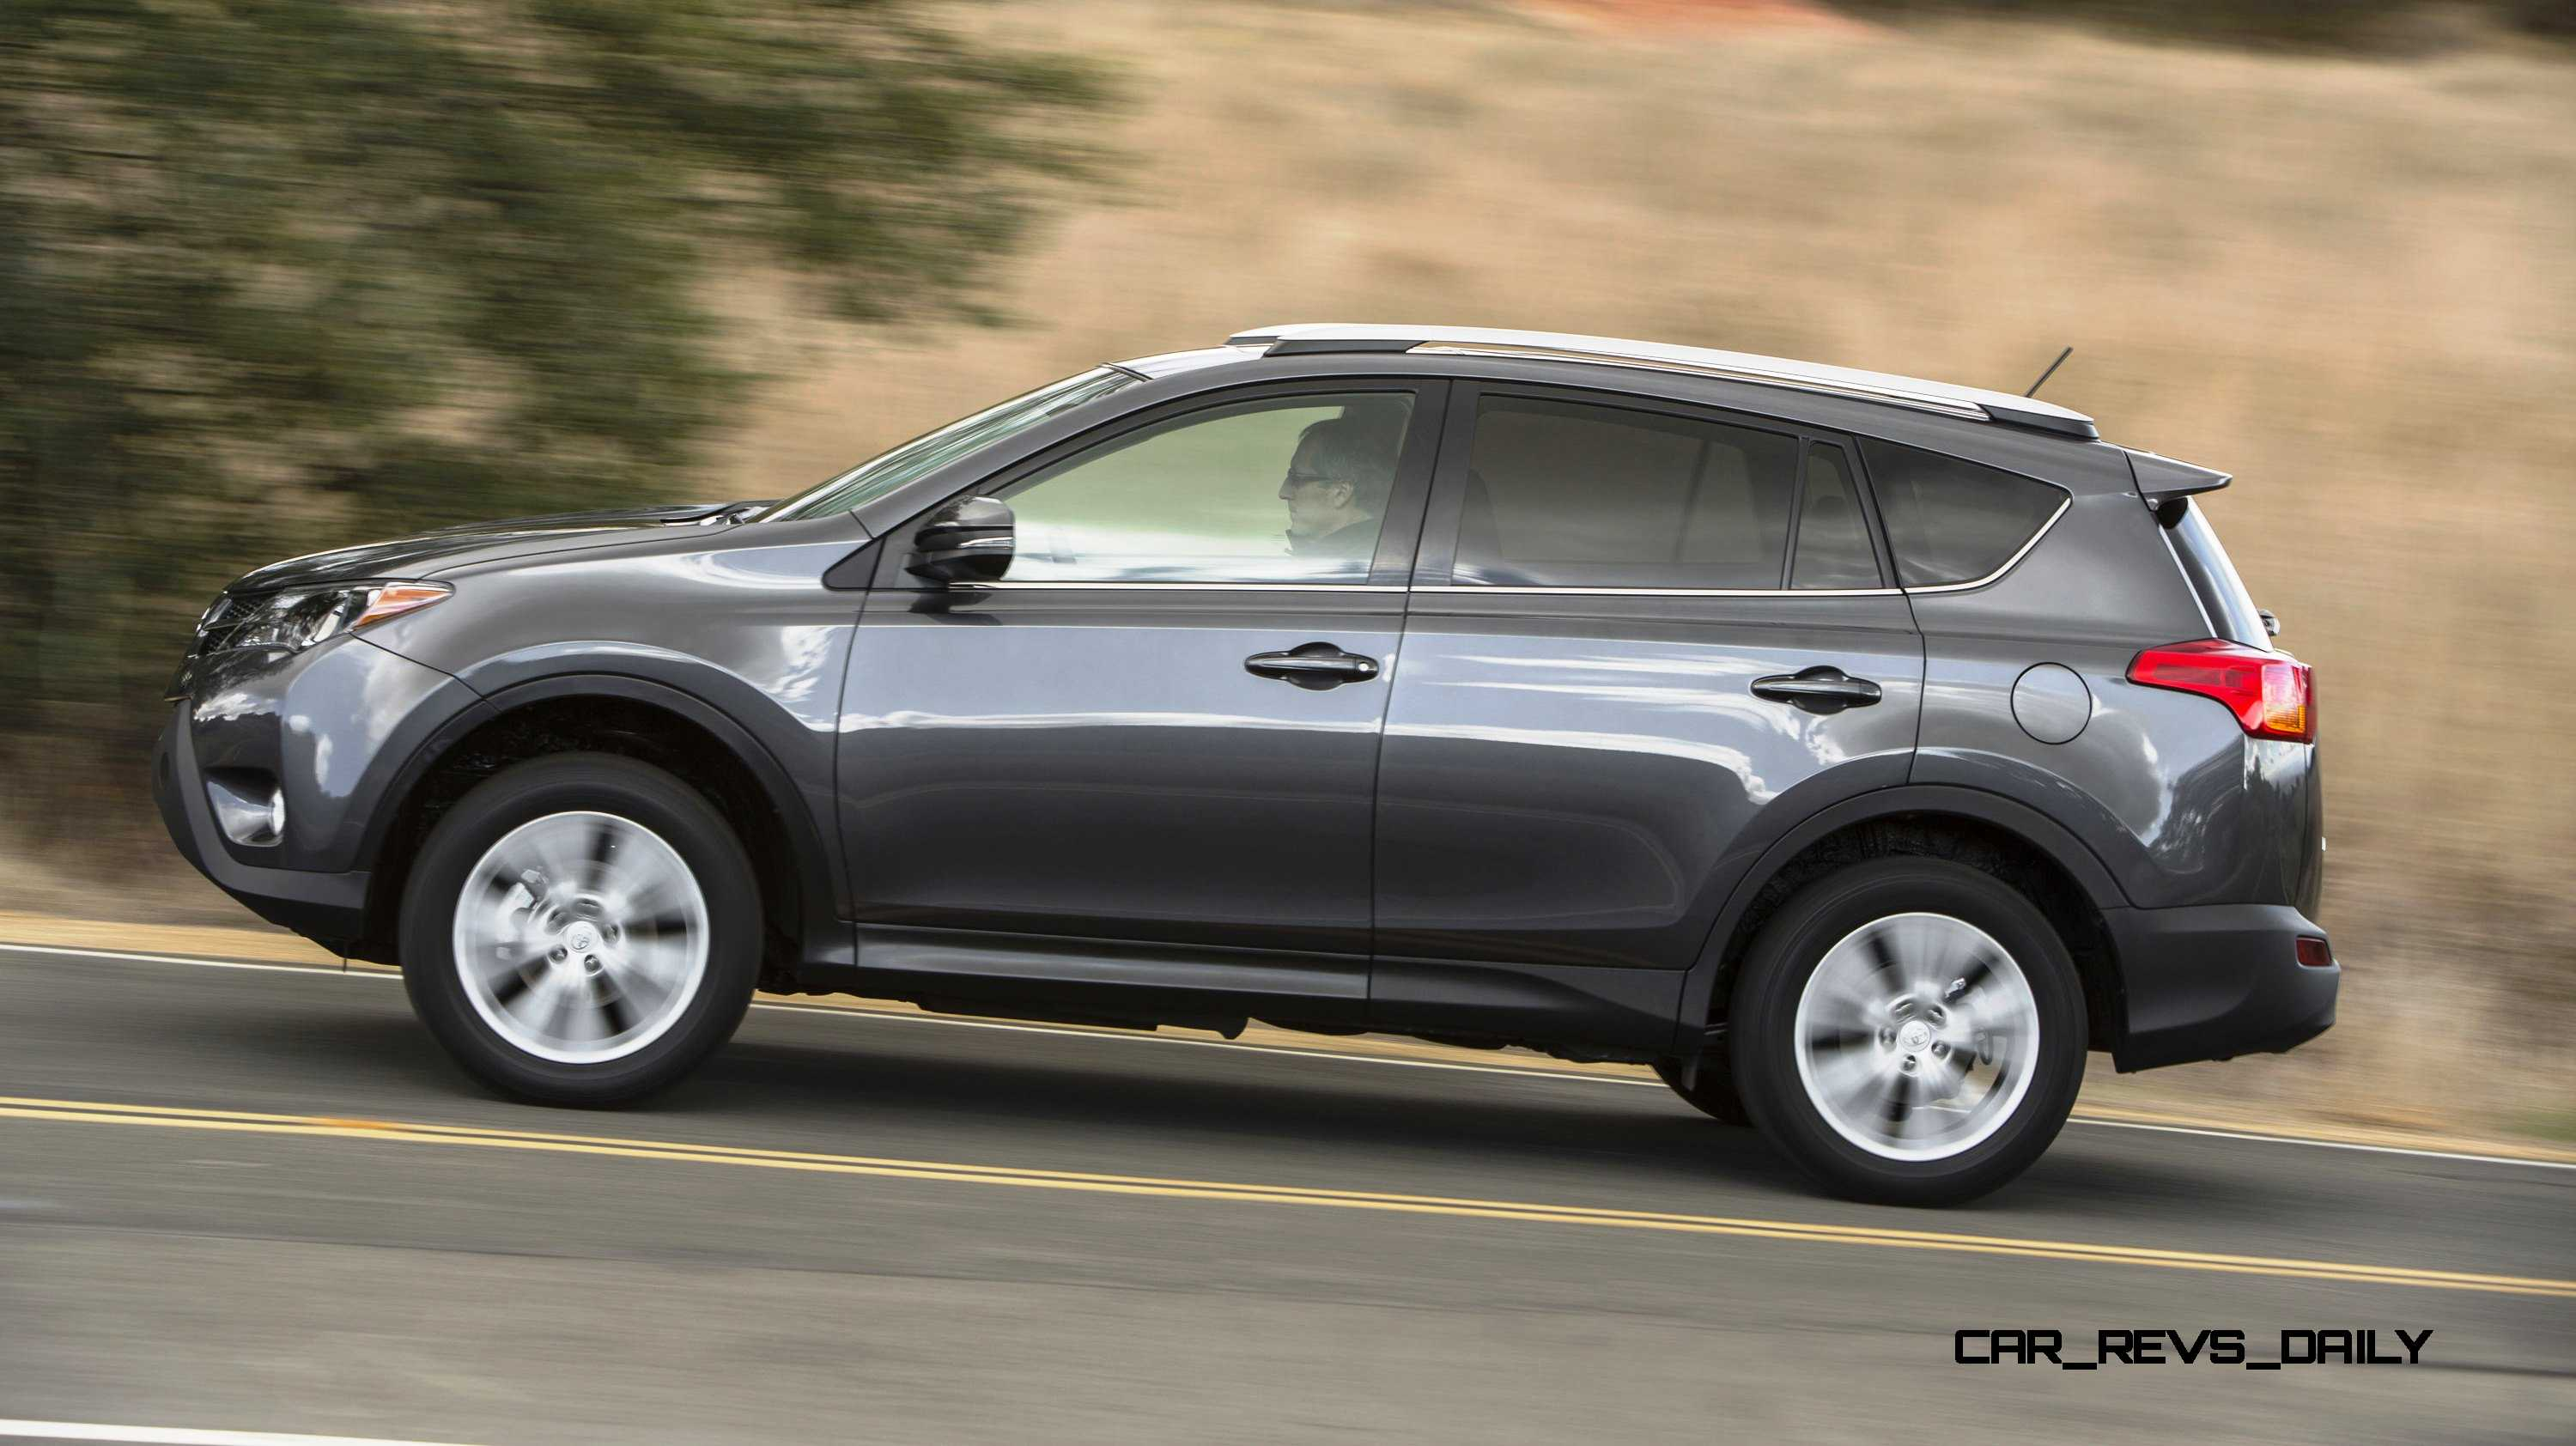 Road Test Review - 2014 Toyota RAV4 XLE AWD